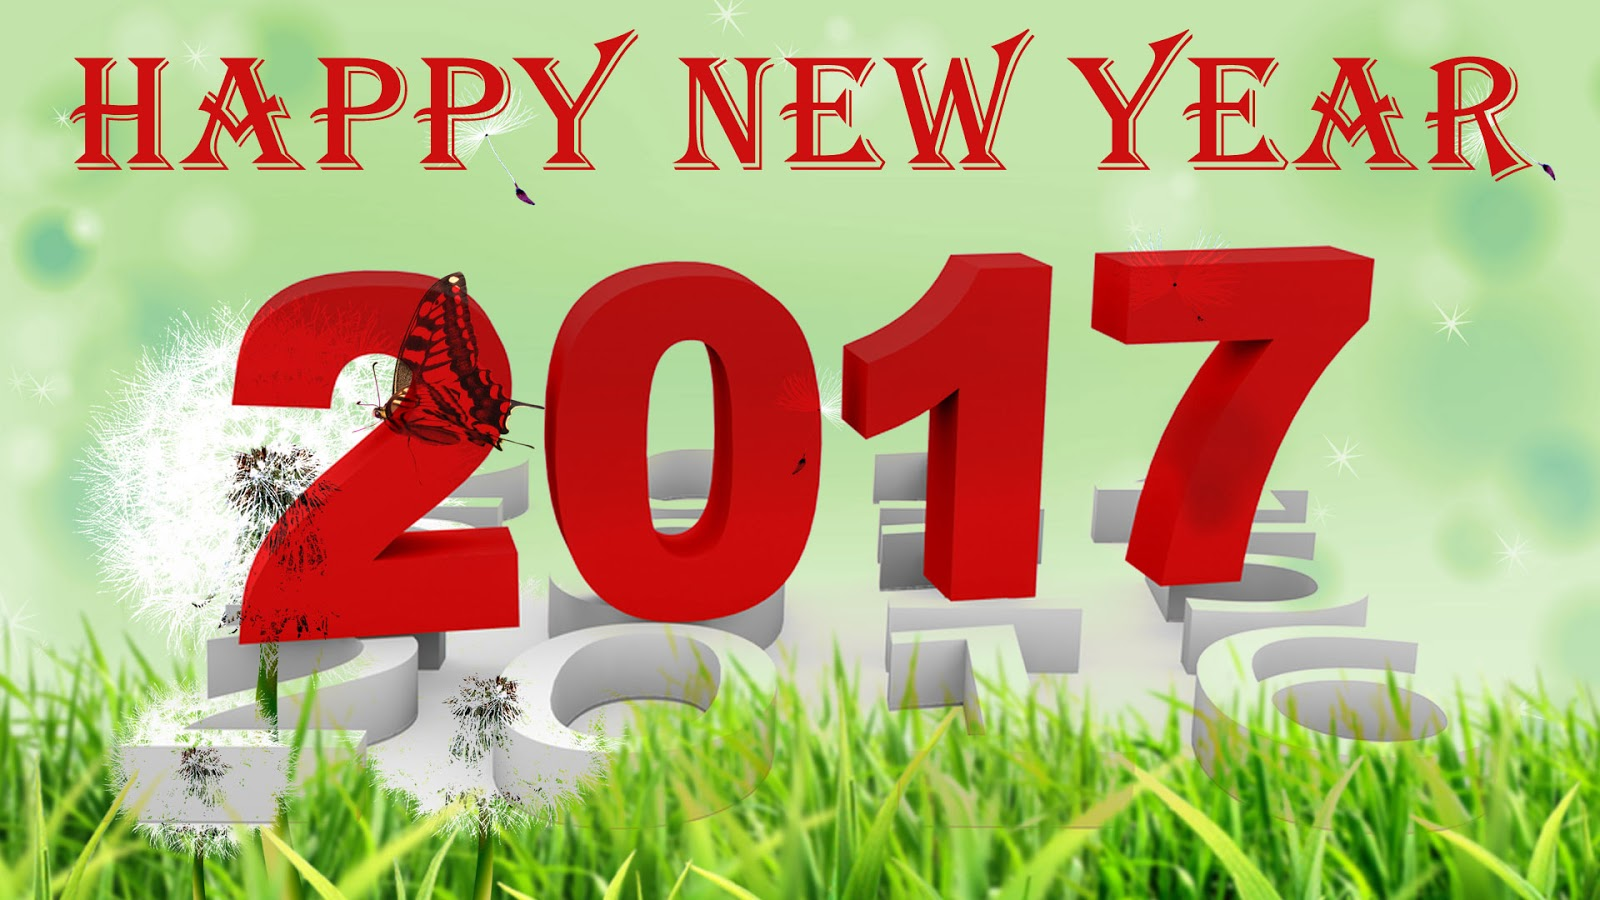 Top 100 most amazing happy new year wishes greetings quotes - Happy New Year2017 20